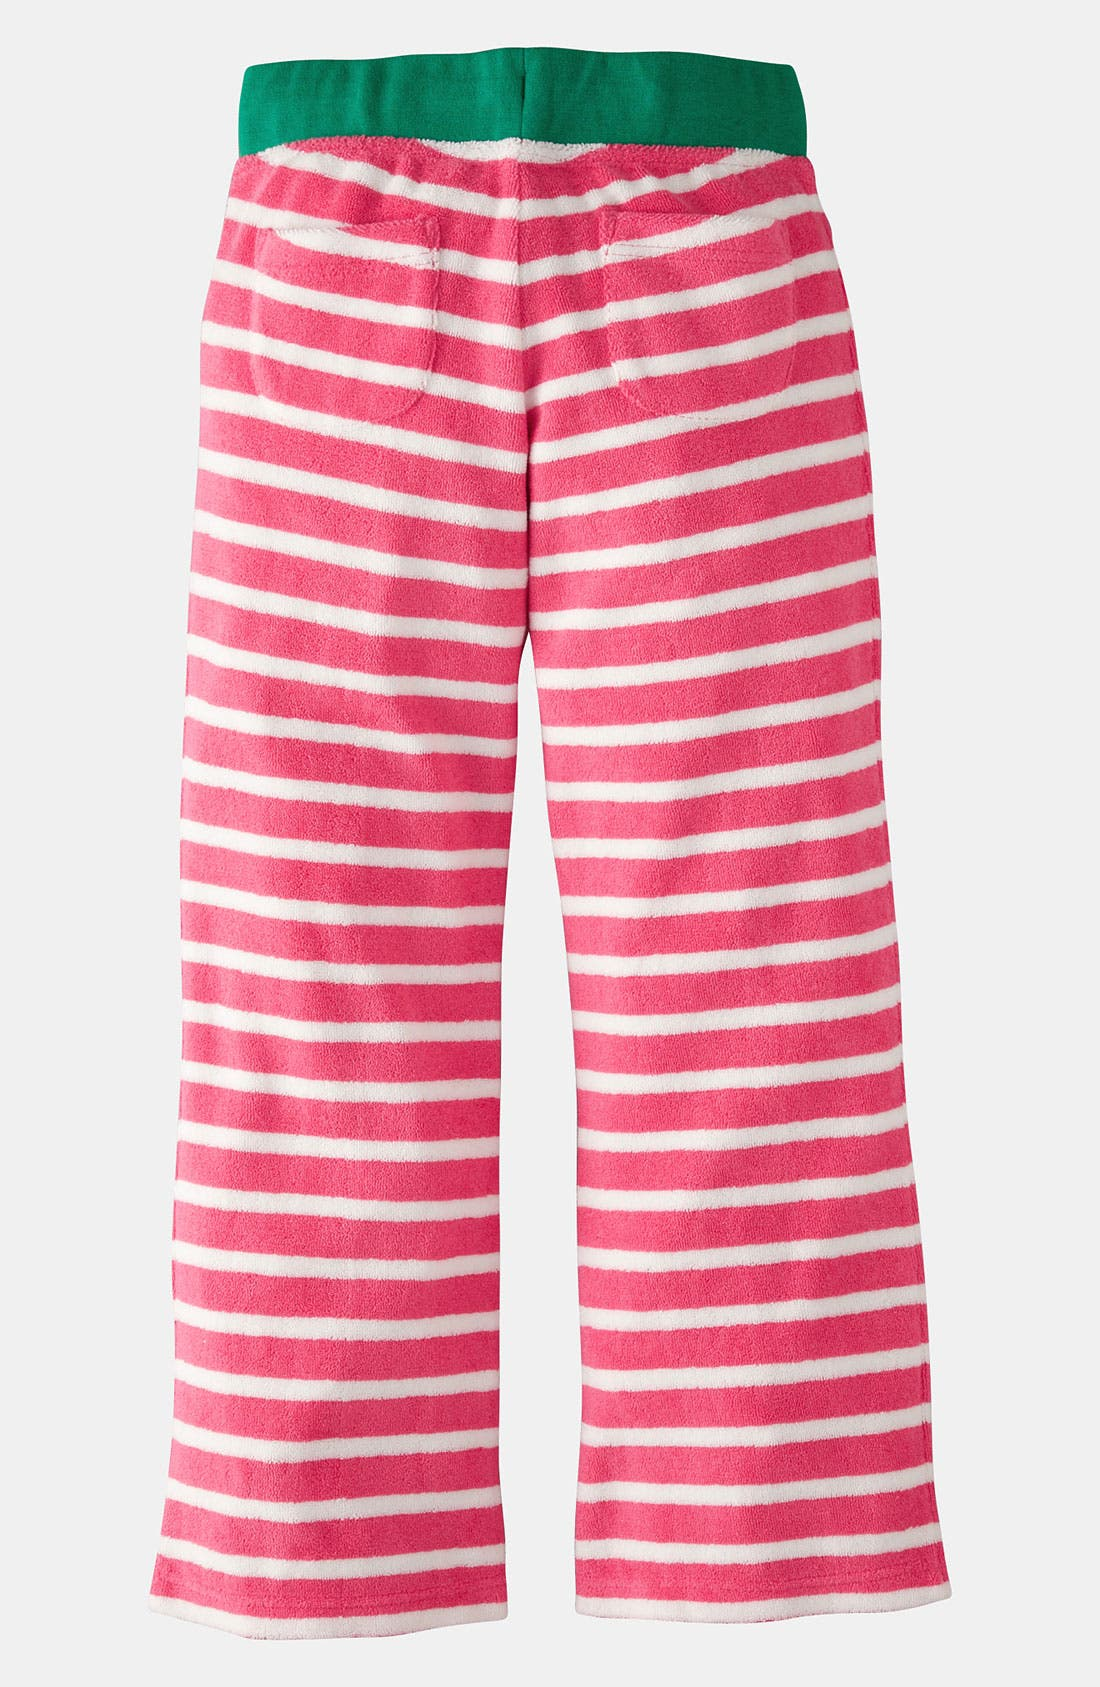 Alternate Image 2  - Mini Boden 'Toweling' Pants (Little Girls & Big Girls)